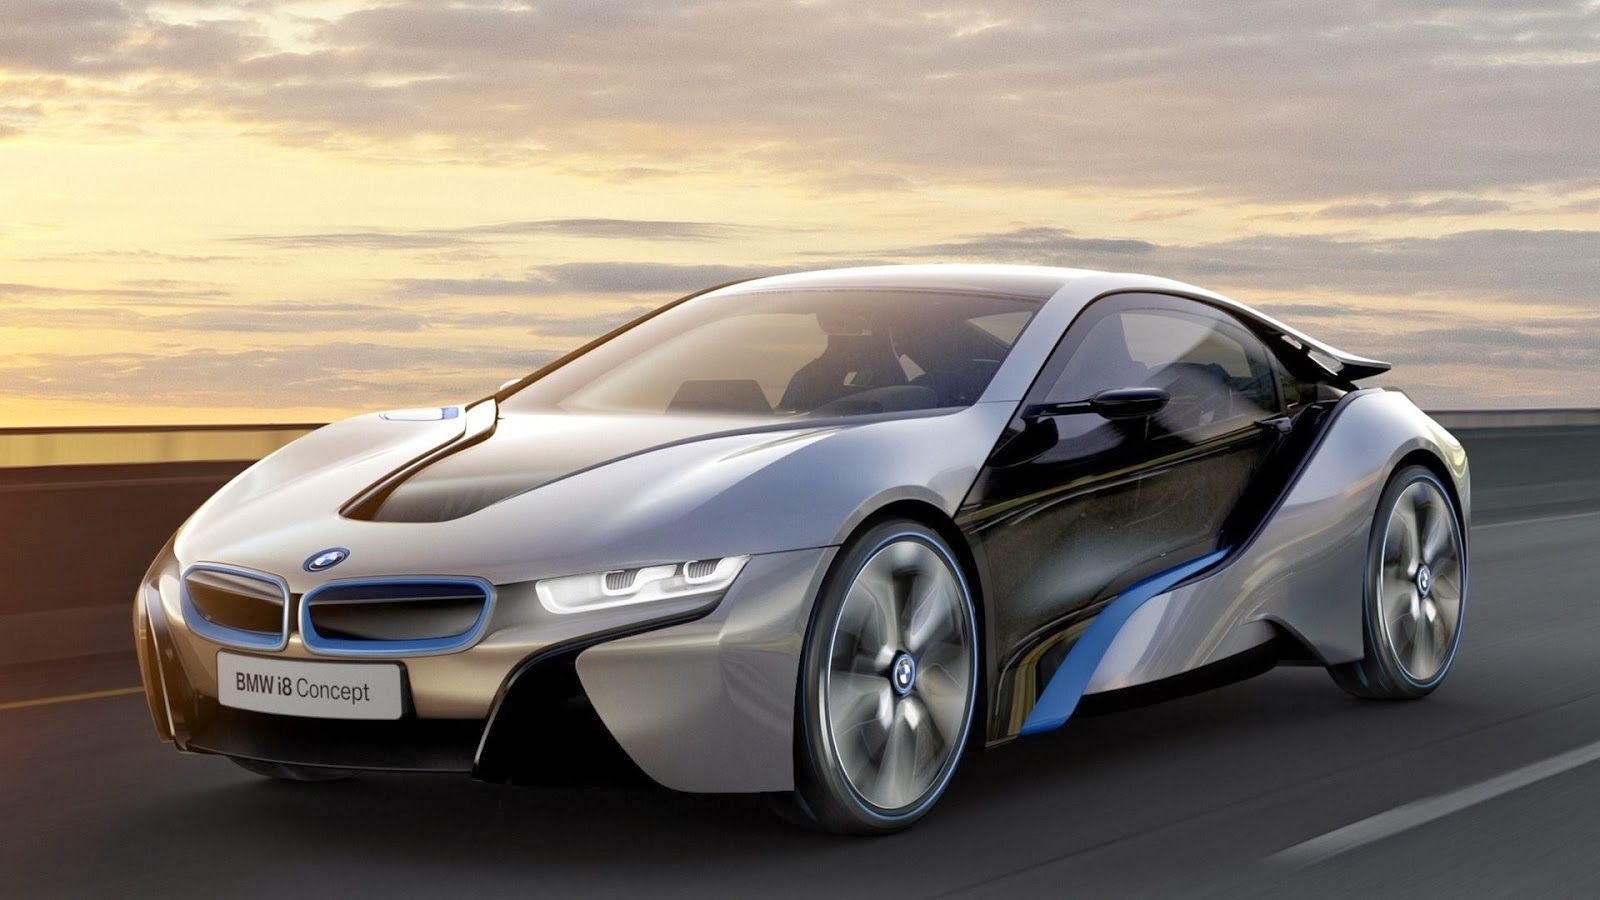 All Hot Informations: Download BMW i8 Cars HD Wallpapers 1080p